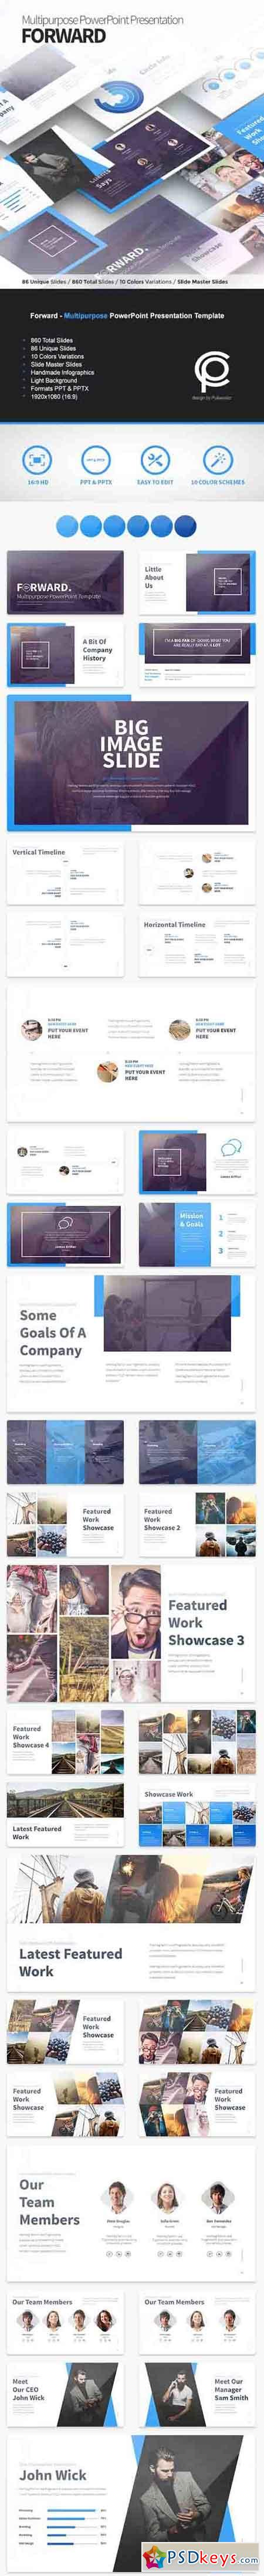 Forward - Multipurpose PowerPoint Presentation Template 16705754